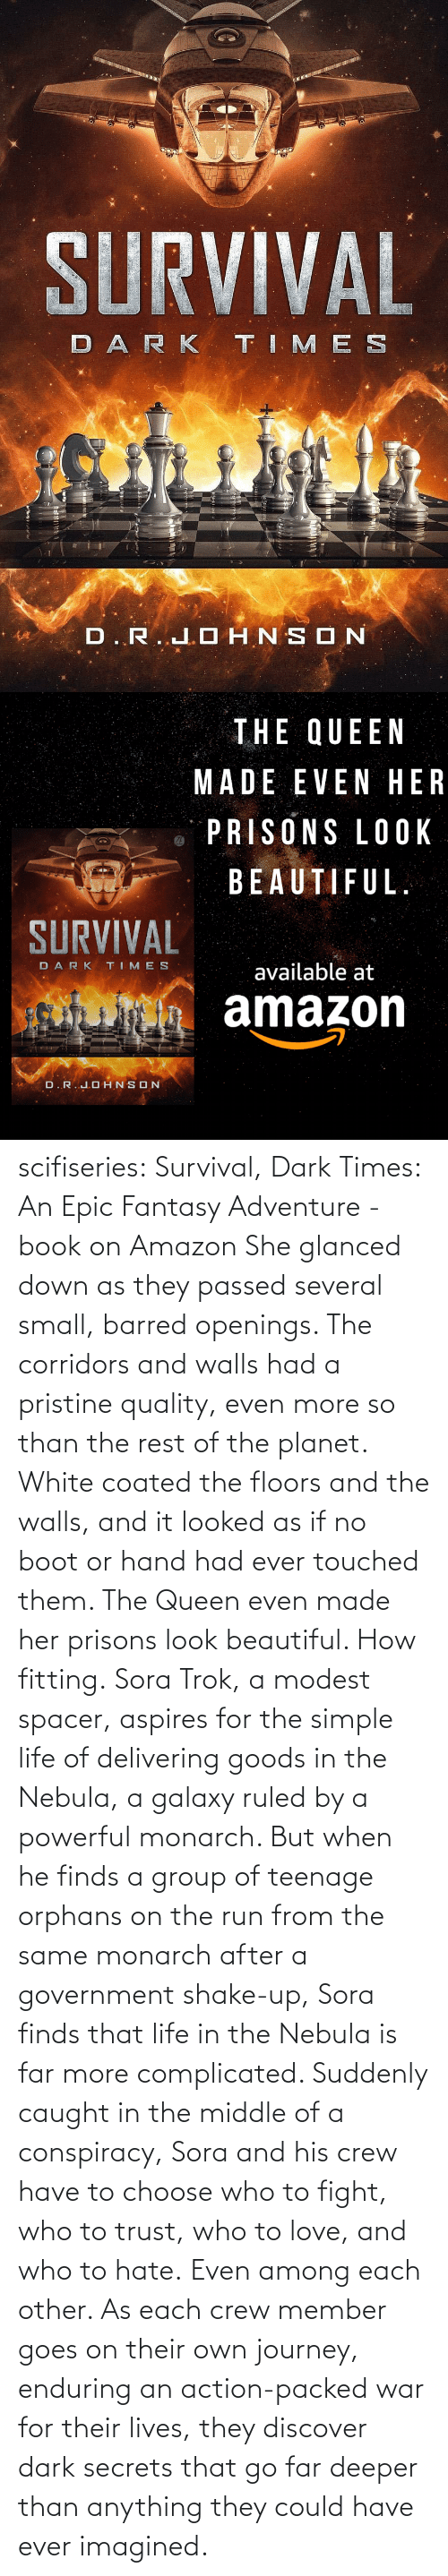 Queen: scifiseries: Survival, Dark Times: An Epic Fantasy Adventure - book on Amazon  She glanced down as they  passed several small, barred openings. The corridors and walls had a  pristine quality, even more so than the rest of the planet. White coated  the floors and the walls, and it looked as if no boot or hand had ever  touched them.  The Queen even made her prisons look beautiful.  How fitting. Sora  Trok, a modest spacer, aspires for the simple life of delivering goods  in the Nebula, a galaxy ruled by a powerful monarch. But when he finds a  group of teenage orphans on the run from the same monarch after a  government shake-up, Sora finds that life in the Nebula is far more complicated.  Suddenly  caught in the middle of a conspiracy, Sora and his crew have to choose  who to fight, who to trust, who to love, and who to hate. Even among each other.  As  each crew member goes on their own journey, enduring an action-packed  war for their lives, they discover dark secrets that go far deeper than  anything they could have ever imagined.